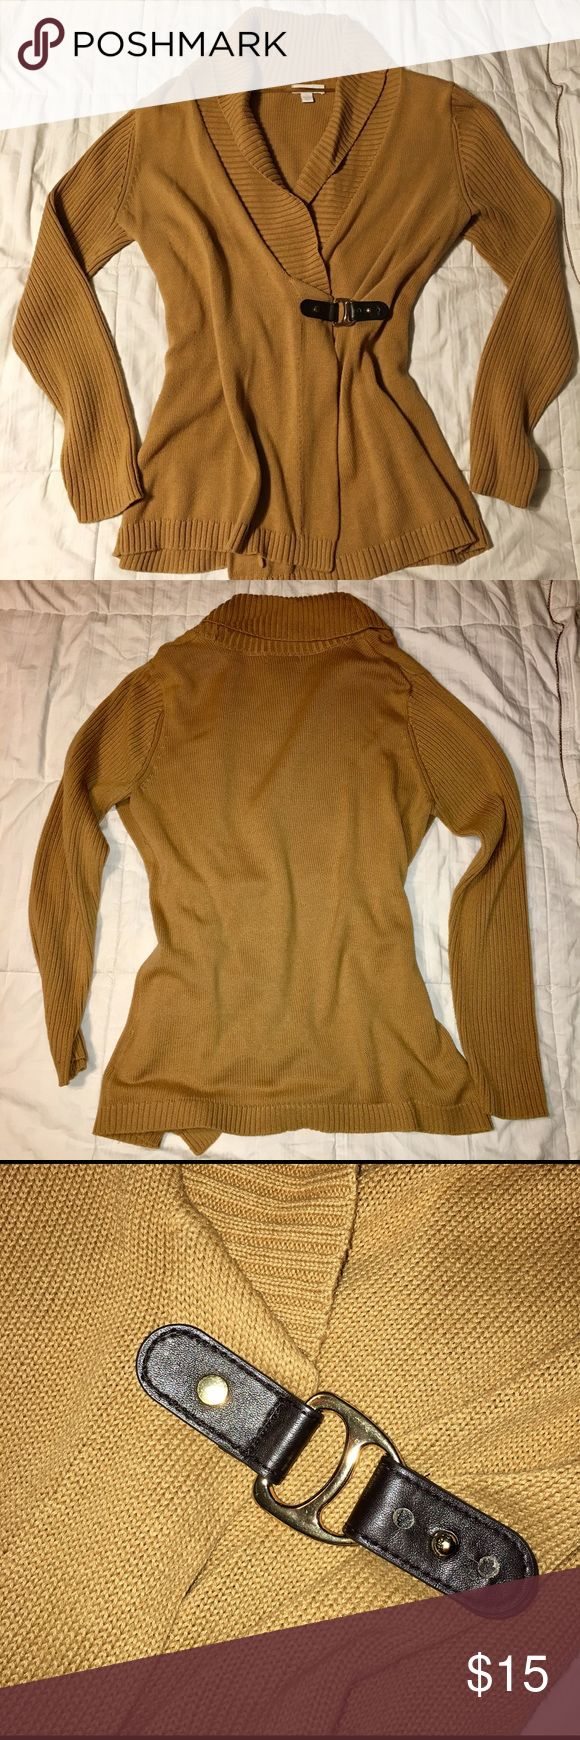 Charter Club Wrap Sweater with brown buckle Charter Club Wrap Sweater with brown buckle.  Pair with jeans and riding boots for a super cute fall look! Charter Club Sweaters